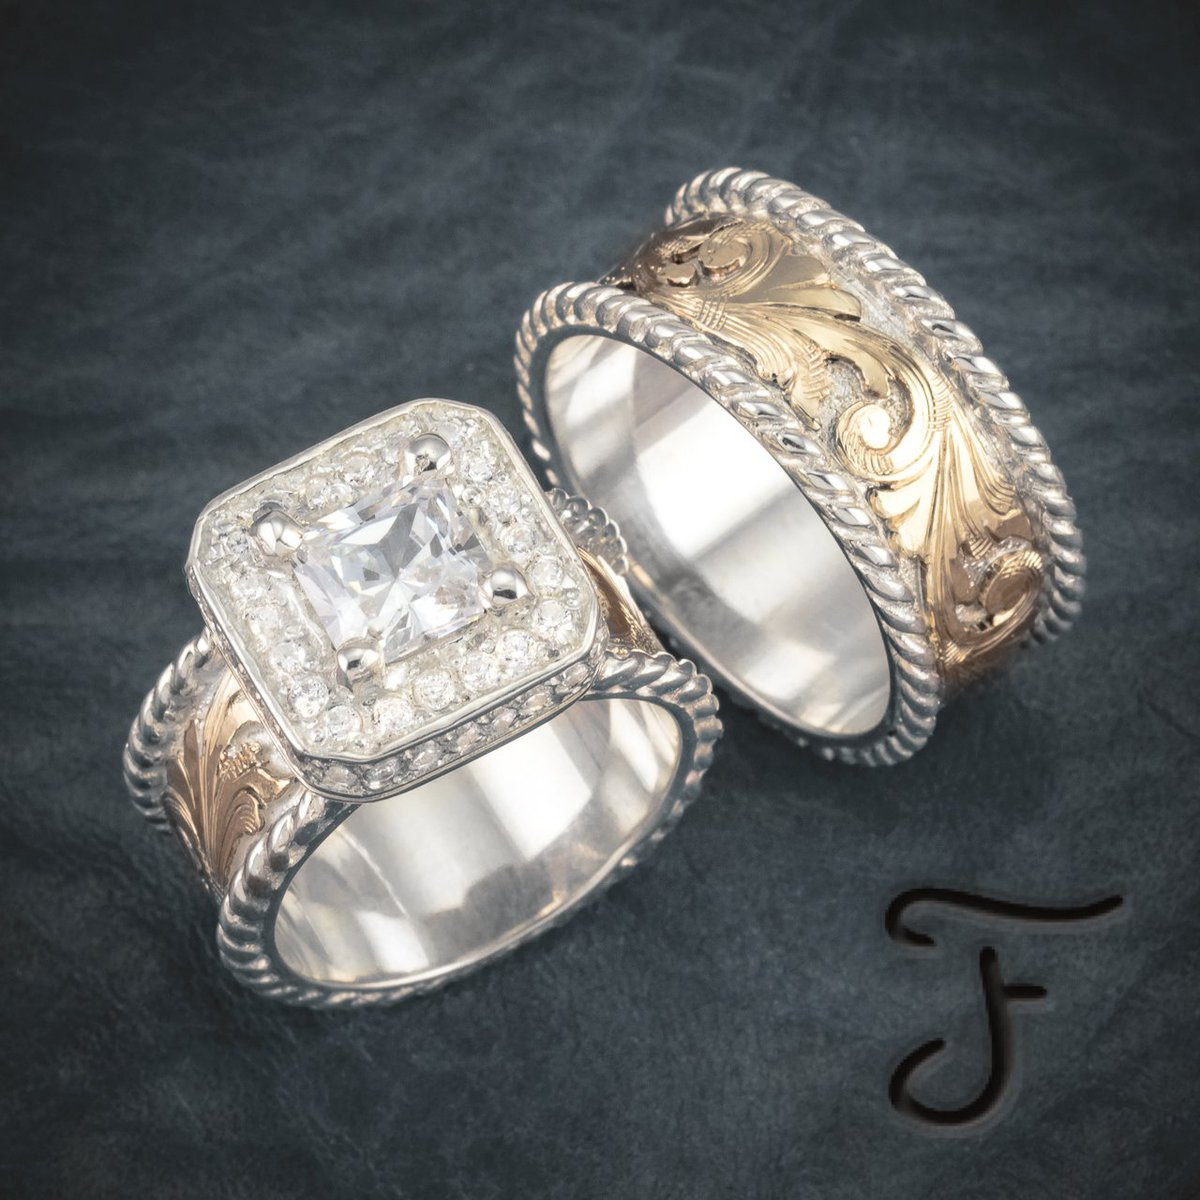 Checkout Fanningjewelry 's Wedding Sets Fanningjewelryweddingsets Married Engaged Westernwedding Weddingrings: Western Wedding Rings Marriage At Websimilar.org